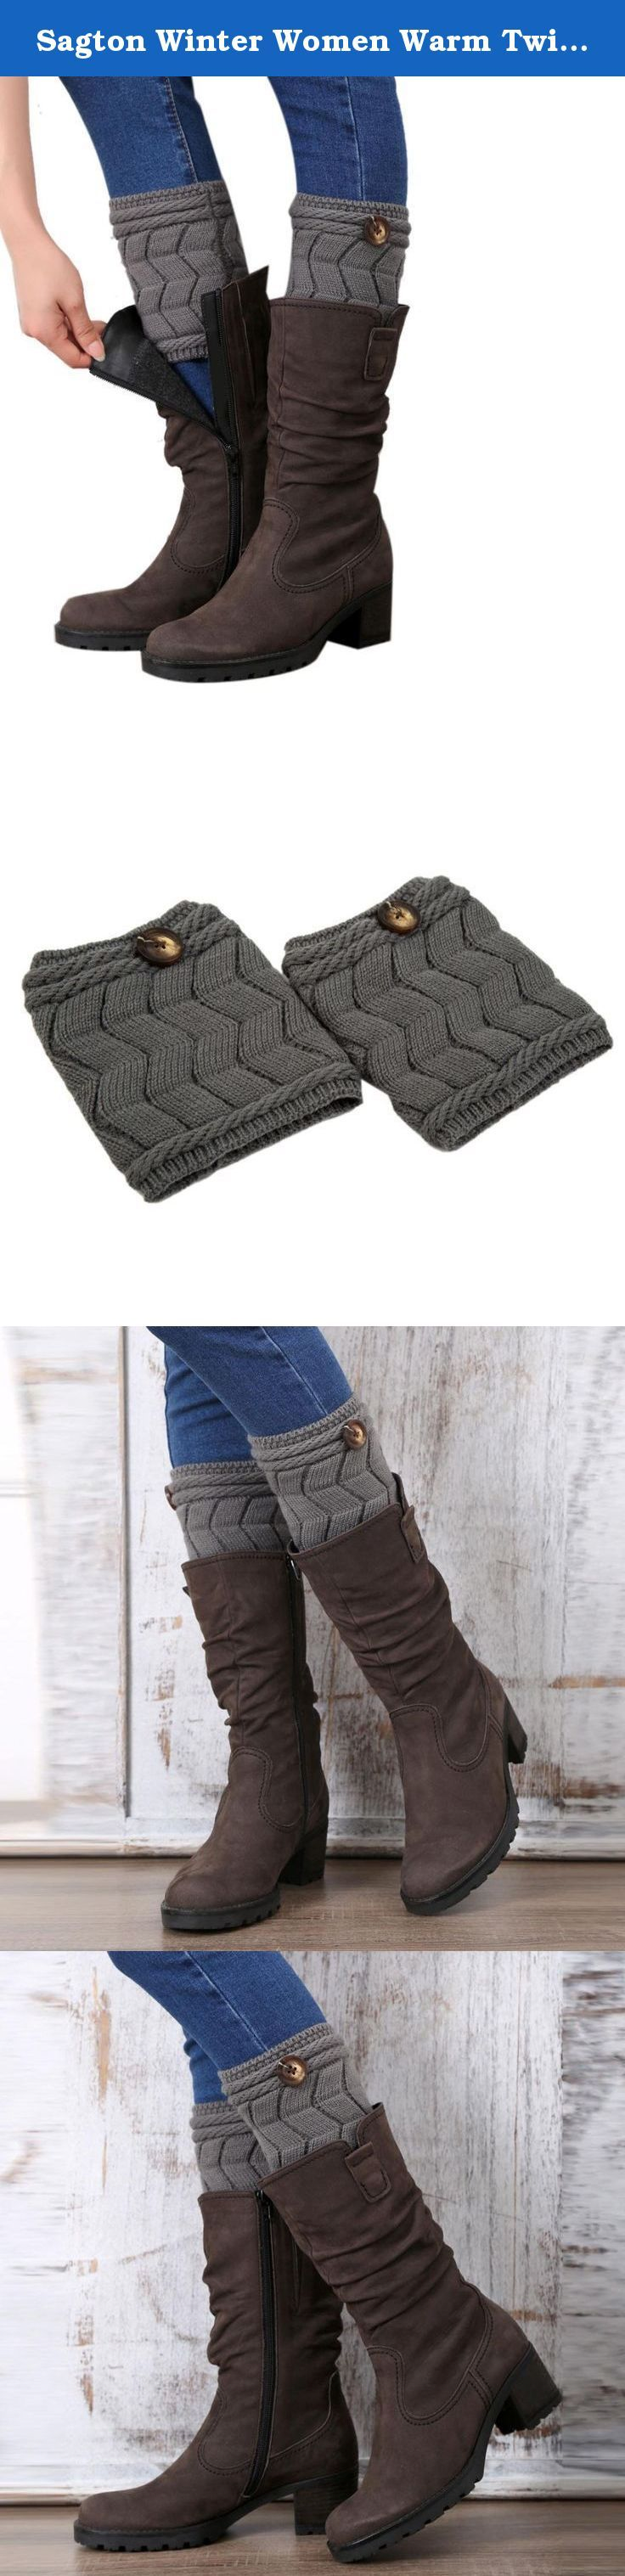 Sagton Winter Women Warm Twisted Buckle Leg Warmers Socks Boot Cover (Gray). Note: 1,Don't worry, most buyers said they got items earlier than estimated time. 2, if you got your items, welcome back to give your precious review, Picture and feedback.Every buyers will apreciate your advice, thanks a lot:)! Feature: 100% new and high quality! Material:Acrylic Fibers Color:Beige,Black,Coffee,Gray,Khaki,White Size:approx 15cm One size fit most,stretchy Soft and fashionable Very comfortable...